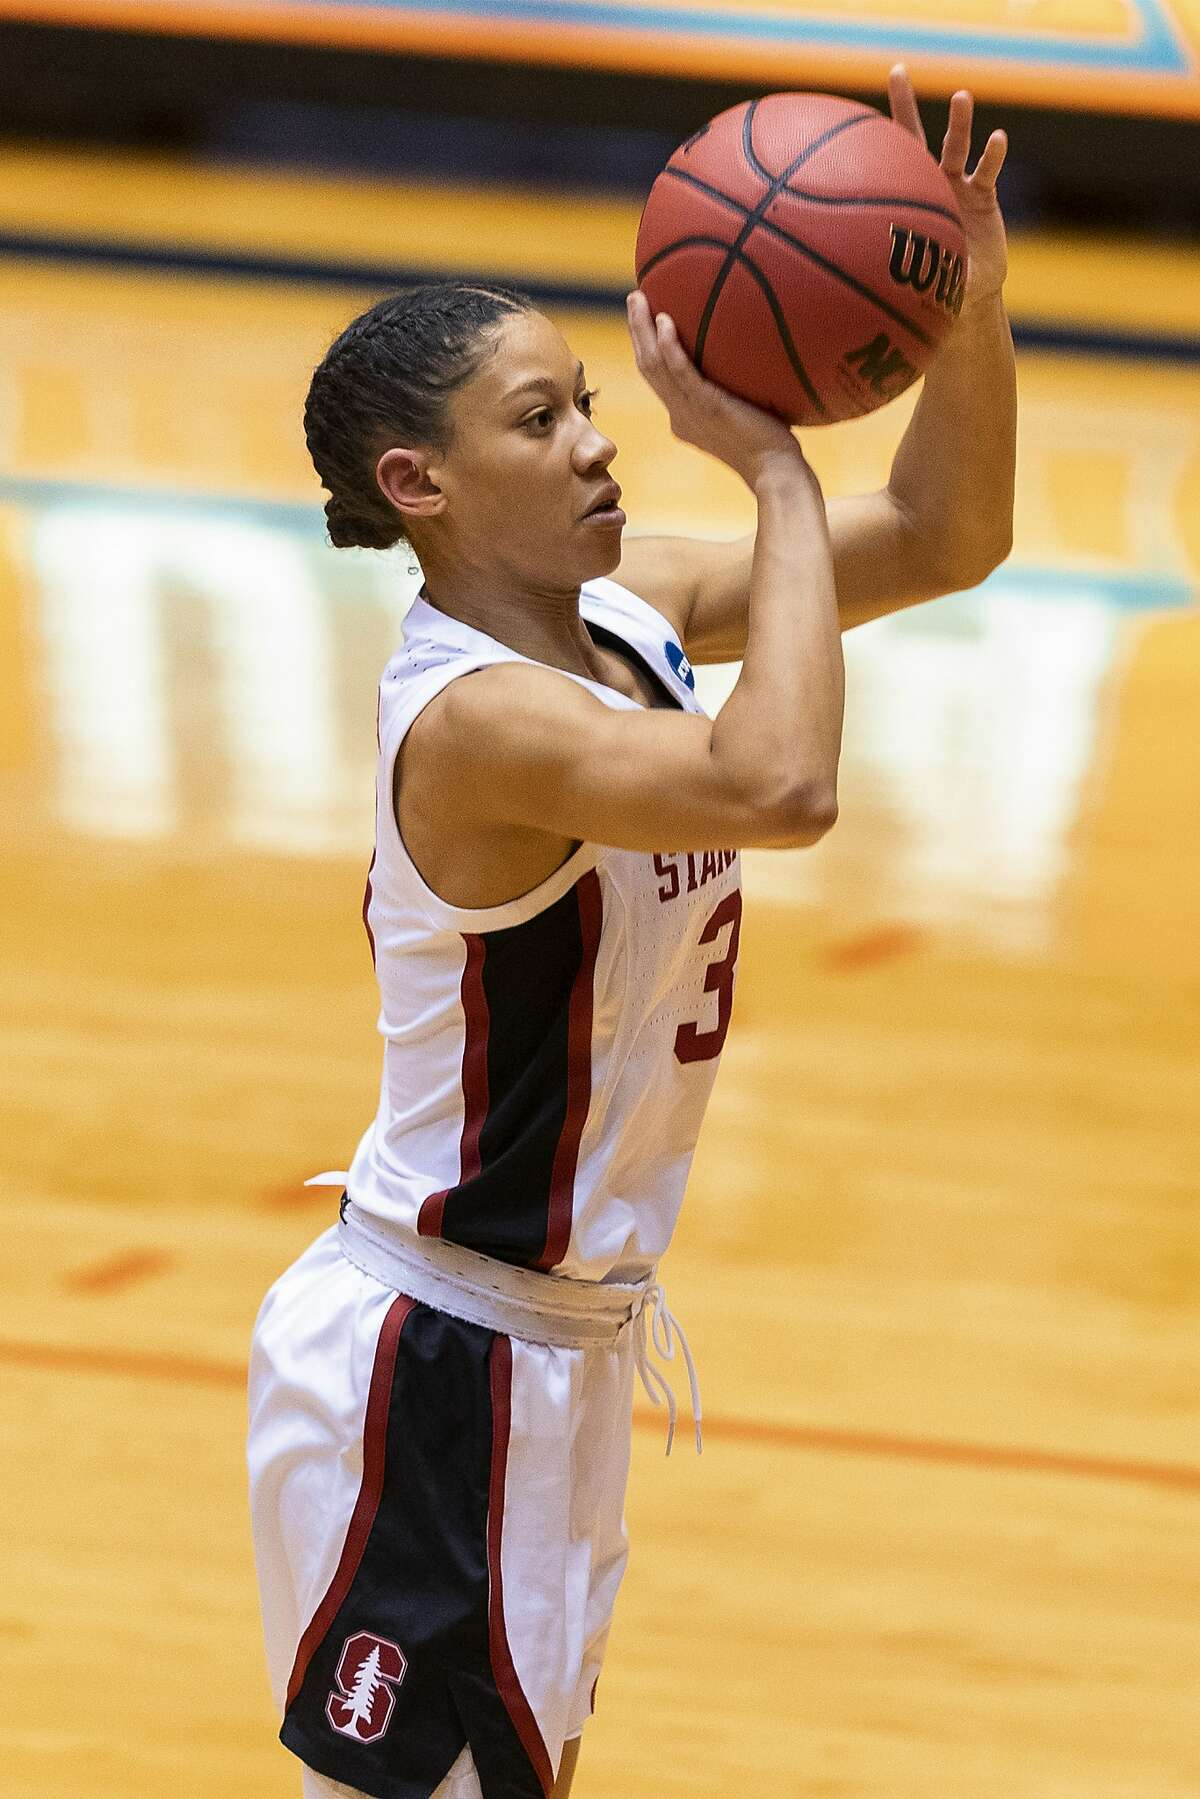 Stanford guard Anna Wilson hits a 3-pointer against Oklahoma State during the first half of a college basketball game in the second round of the NCAA women's tournament at the UTSA Convocation Center in San Antonio on Tuesday, March 23, 2021. (AP Photo/Stephen Spillman)